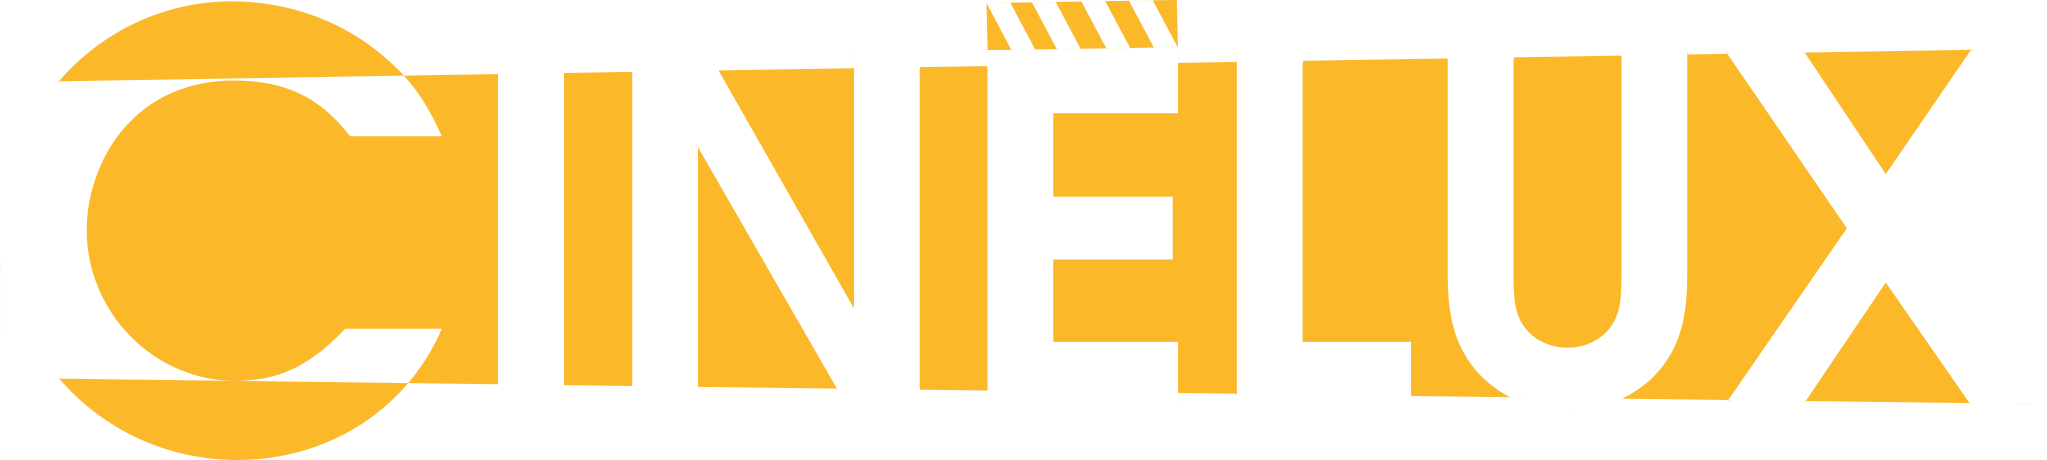 LOGO_CINELUX.png